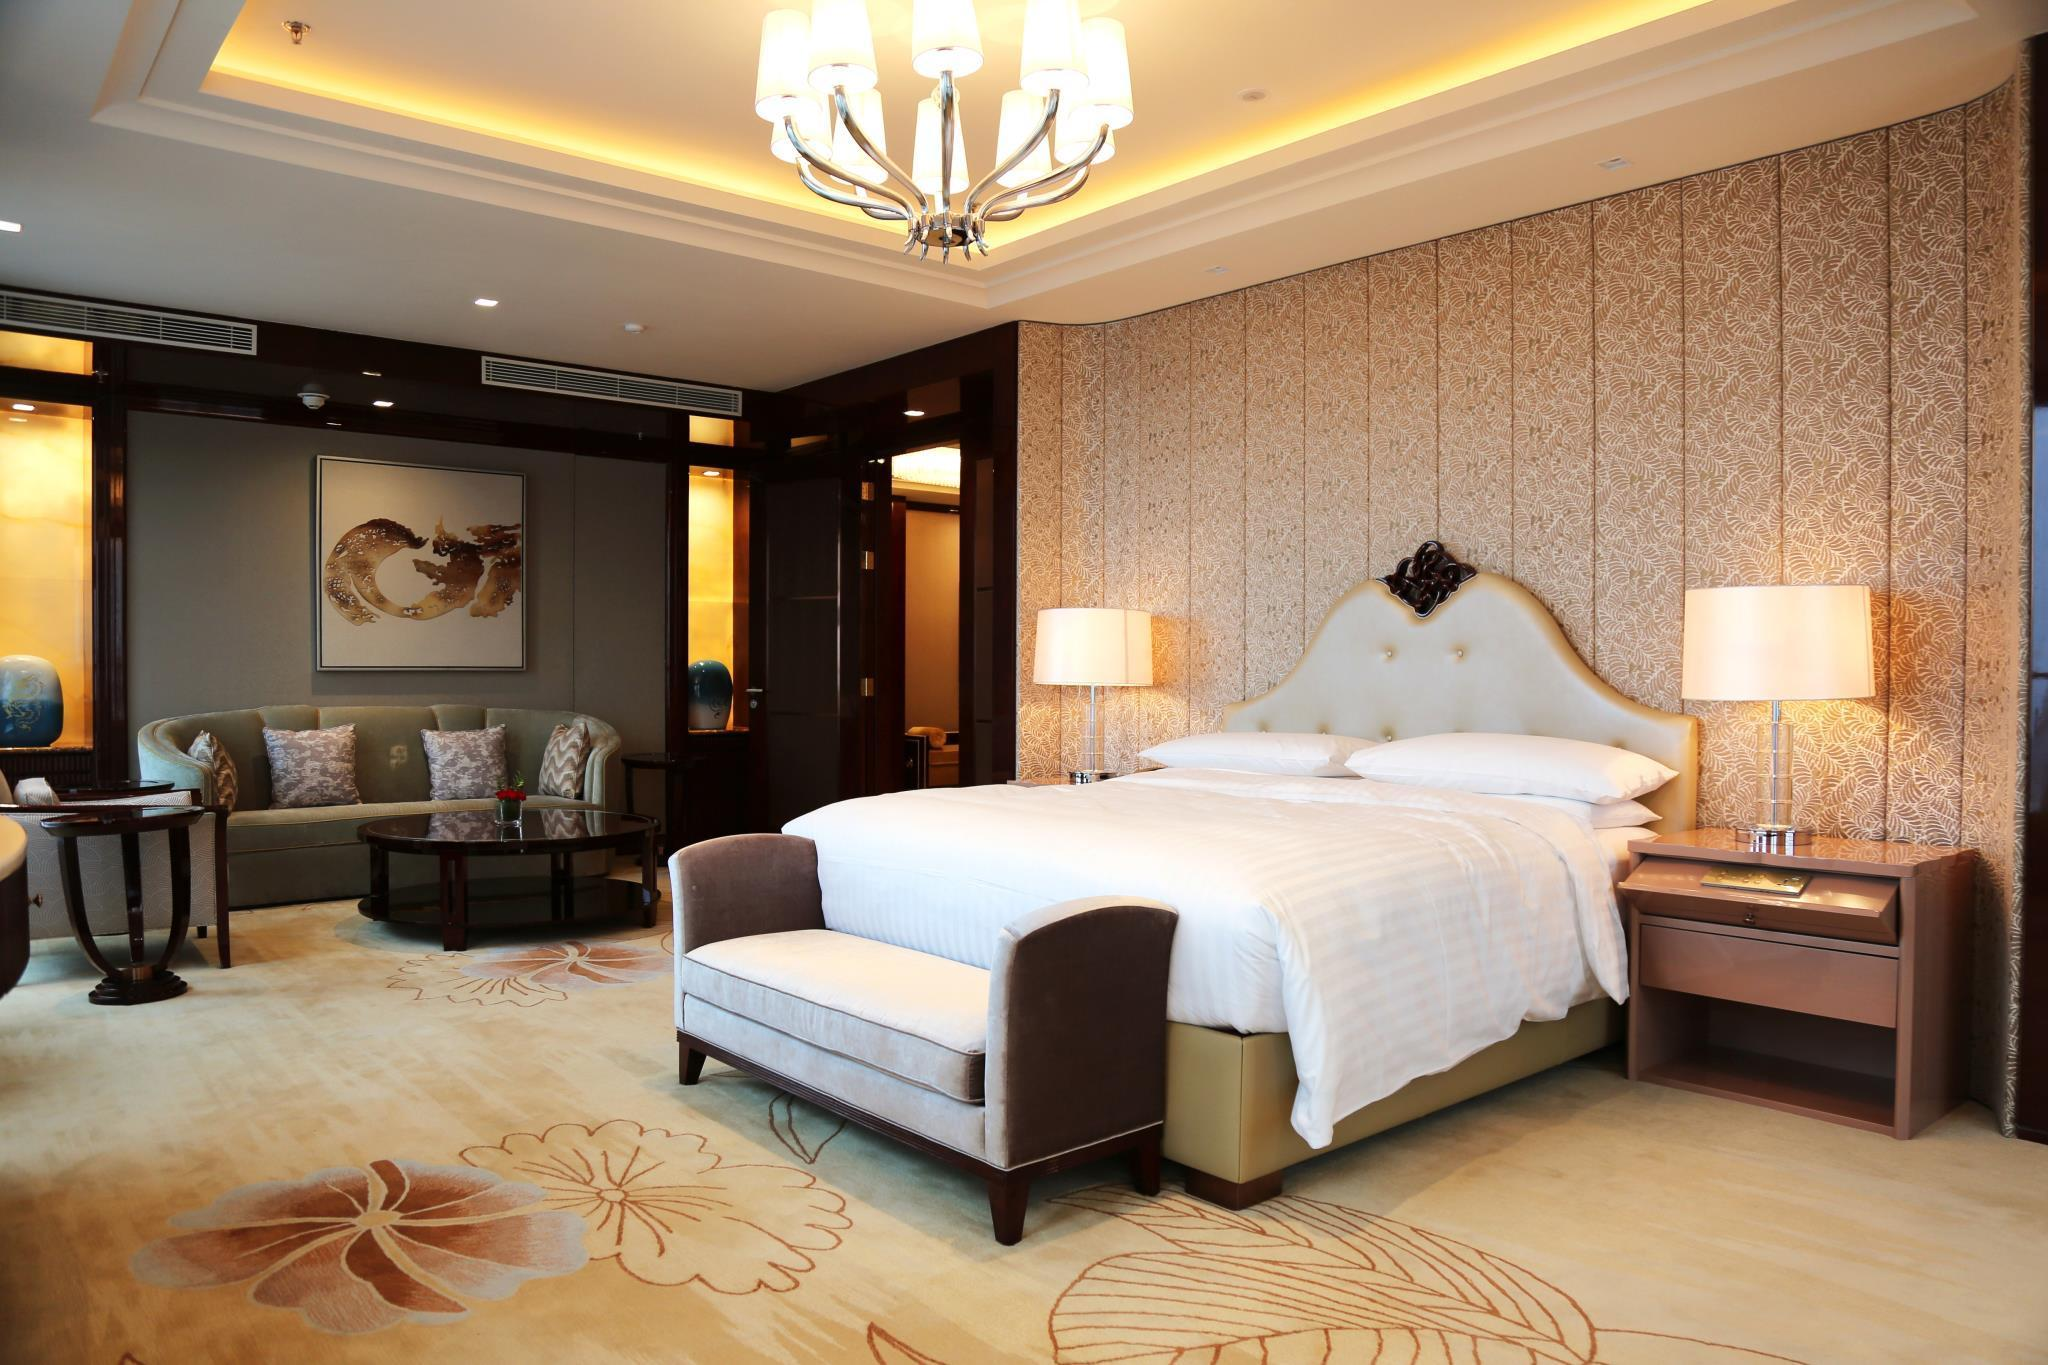 Presidential Suite with King Bed - Executive Lounge Access Included (Presidential Suite, Executive lounge access, 1 King)